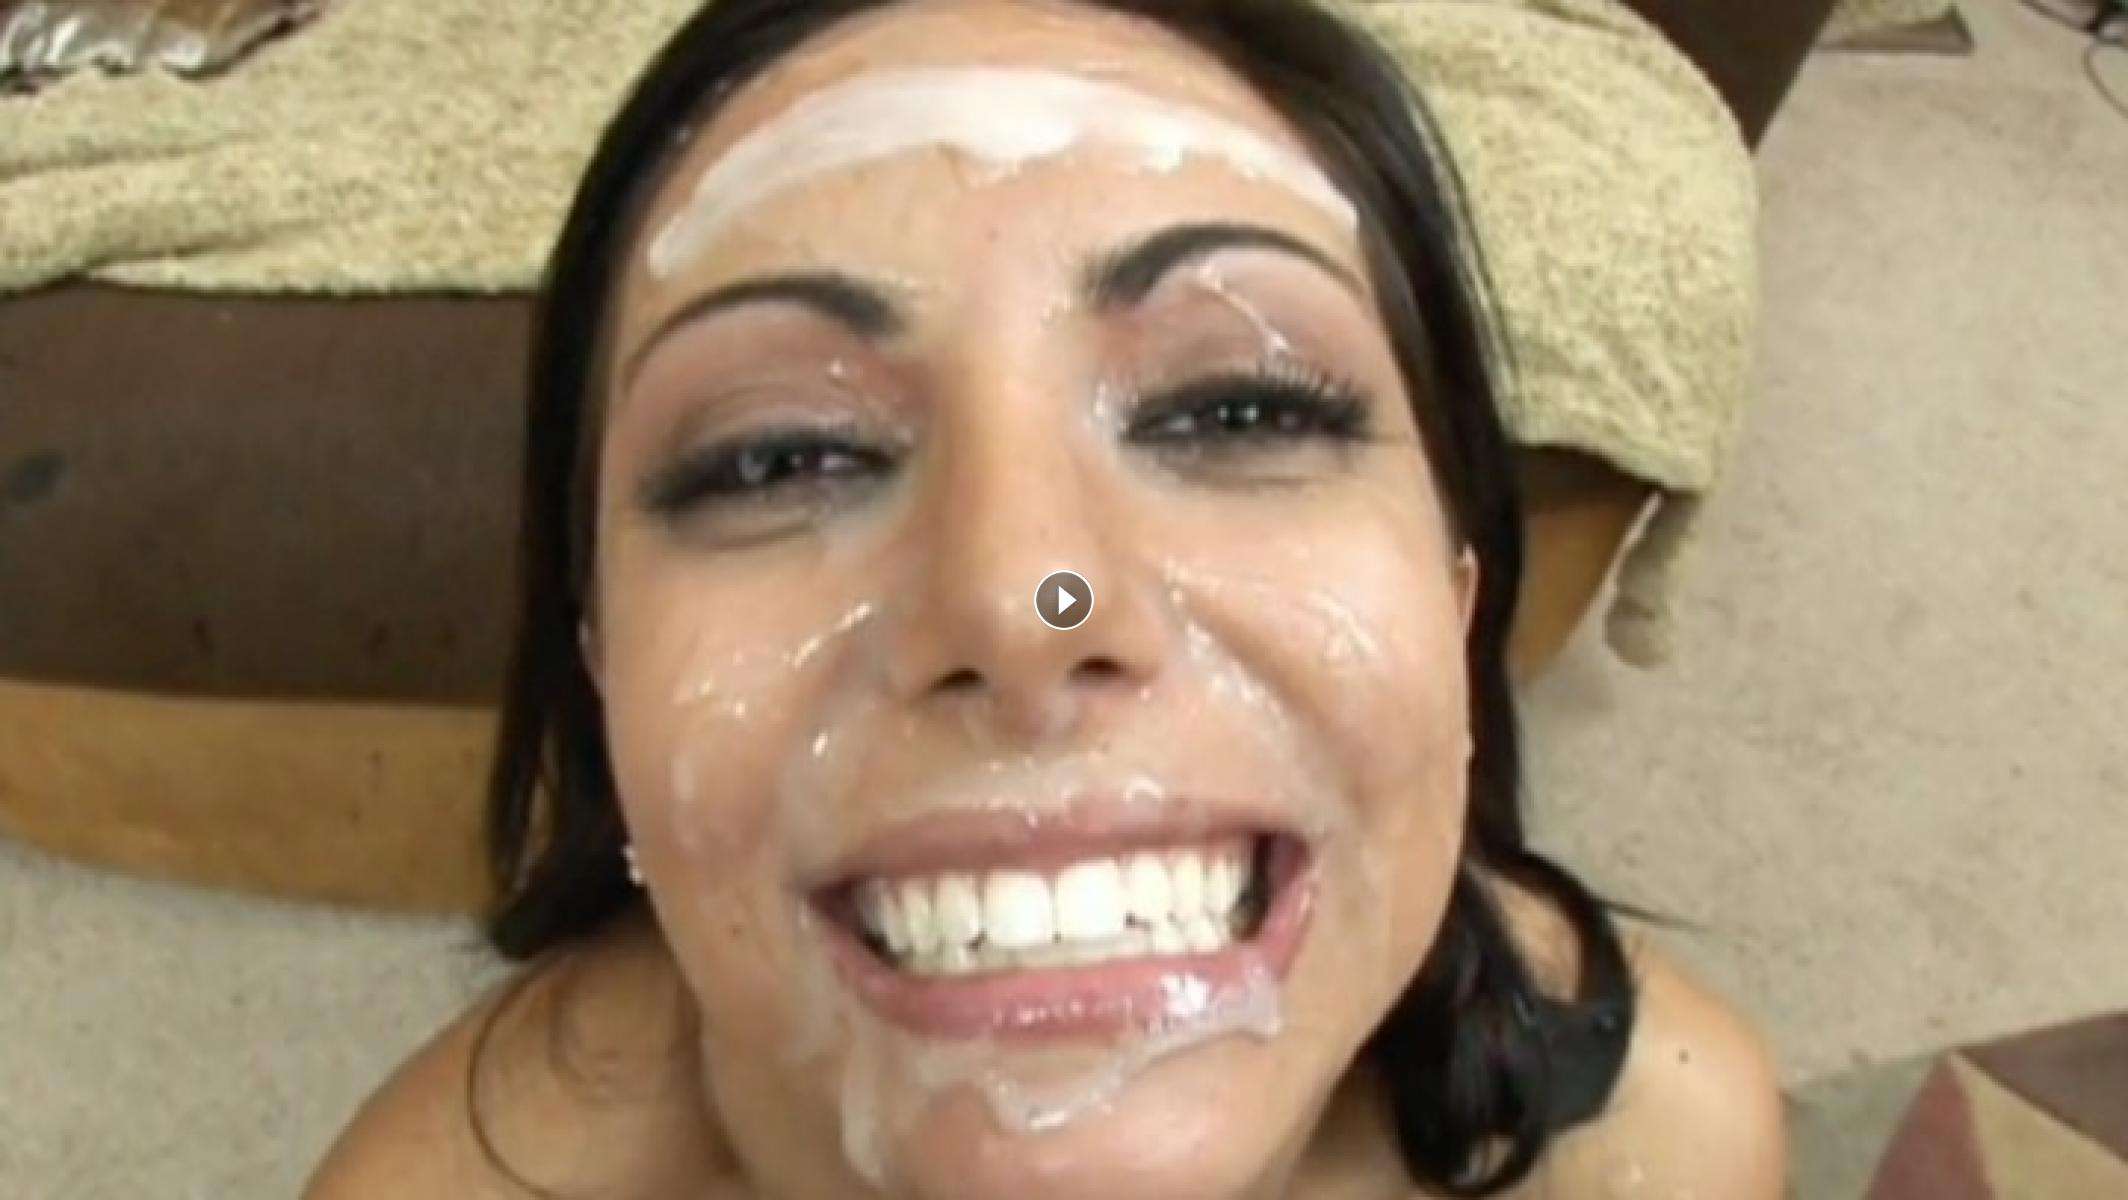 Shaved Brunette Lela Star With Pierced Tongue